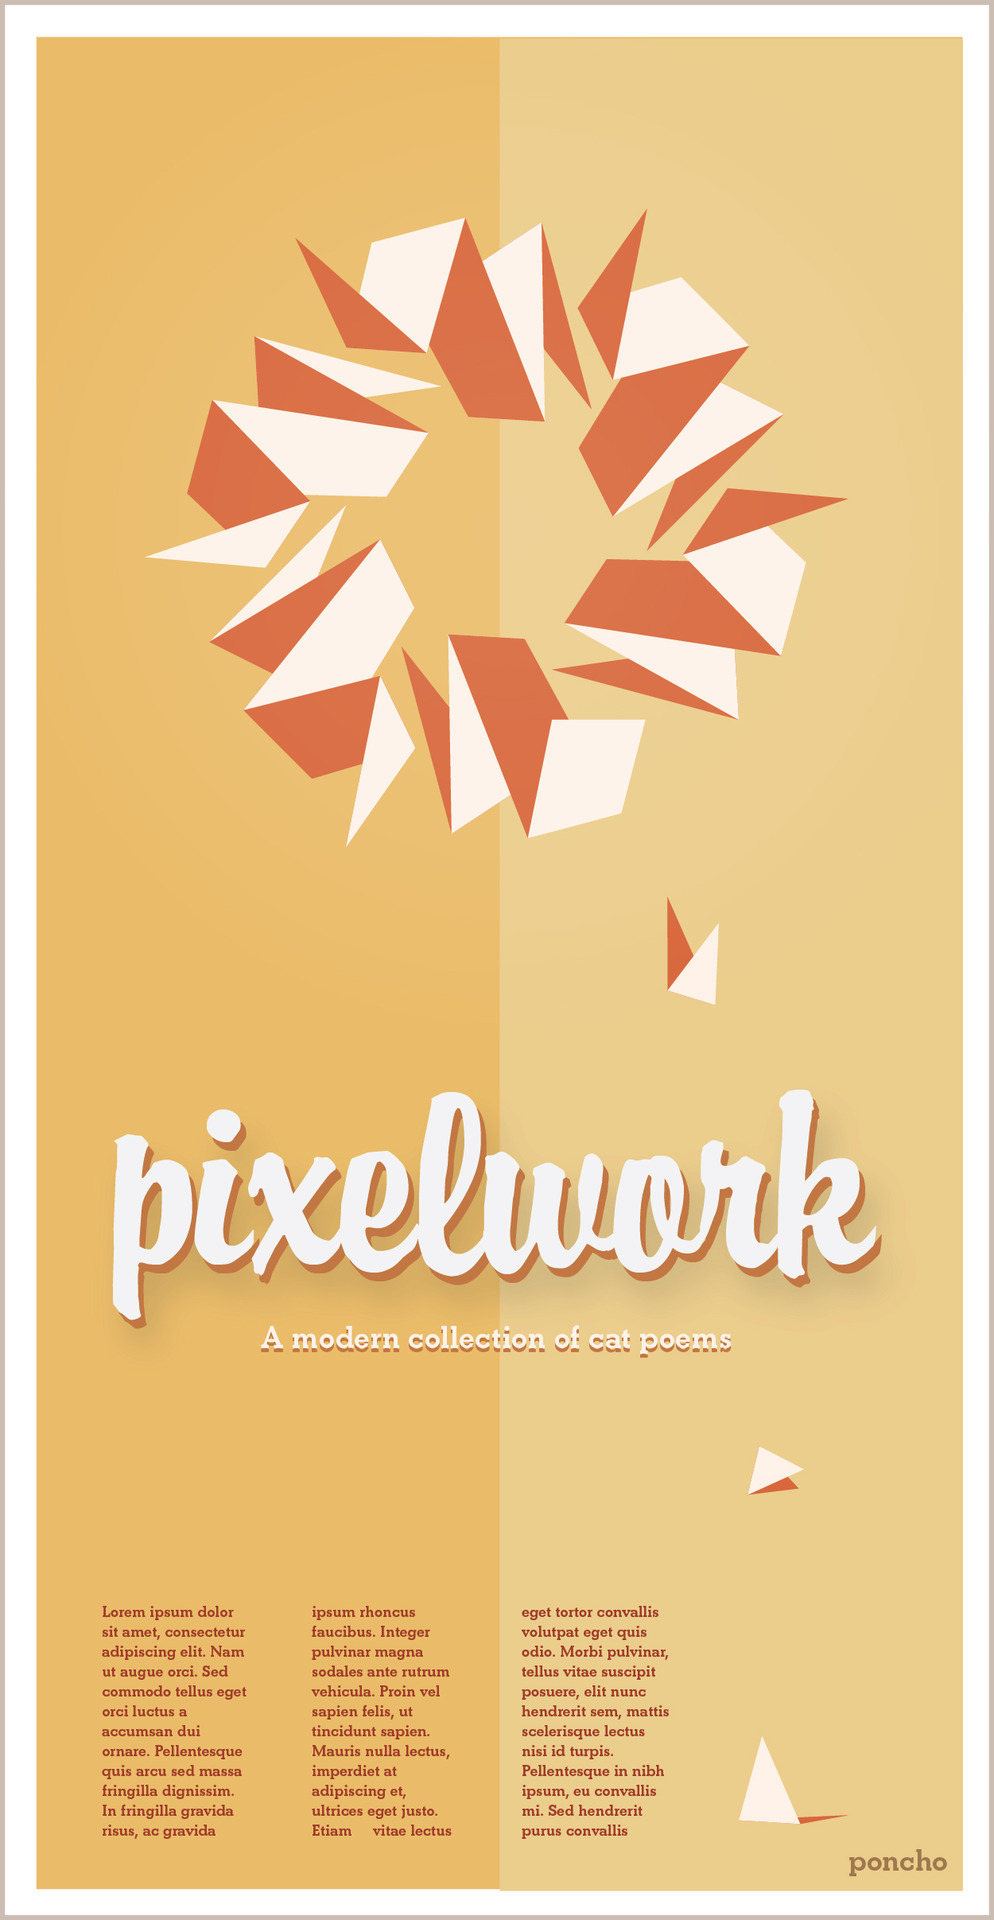 "Template Poster Design- Pixelwork "" A modern collection of cat poems"""